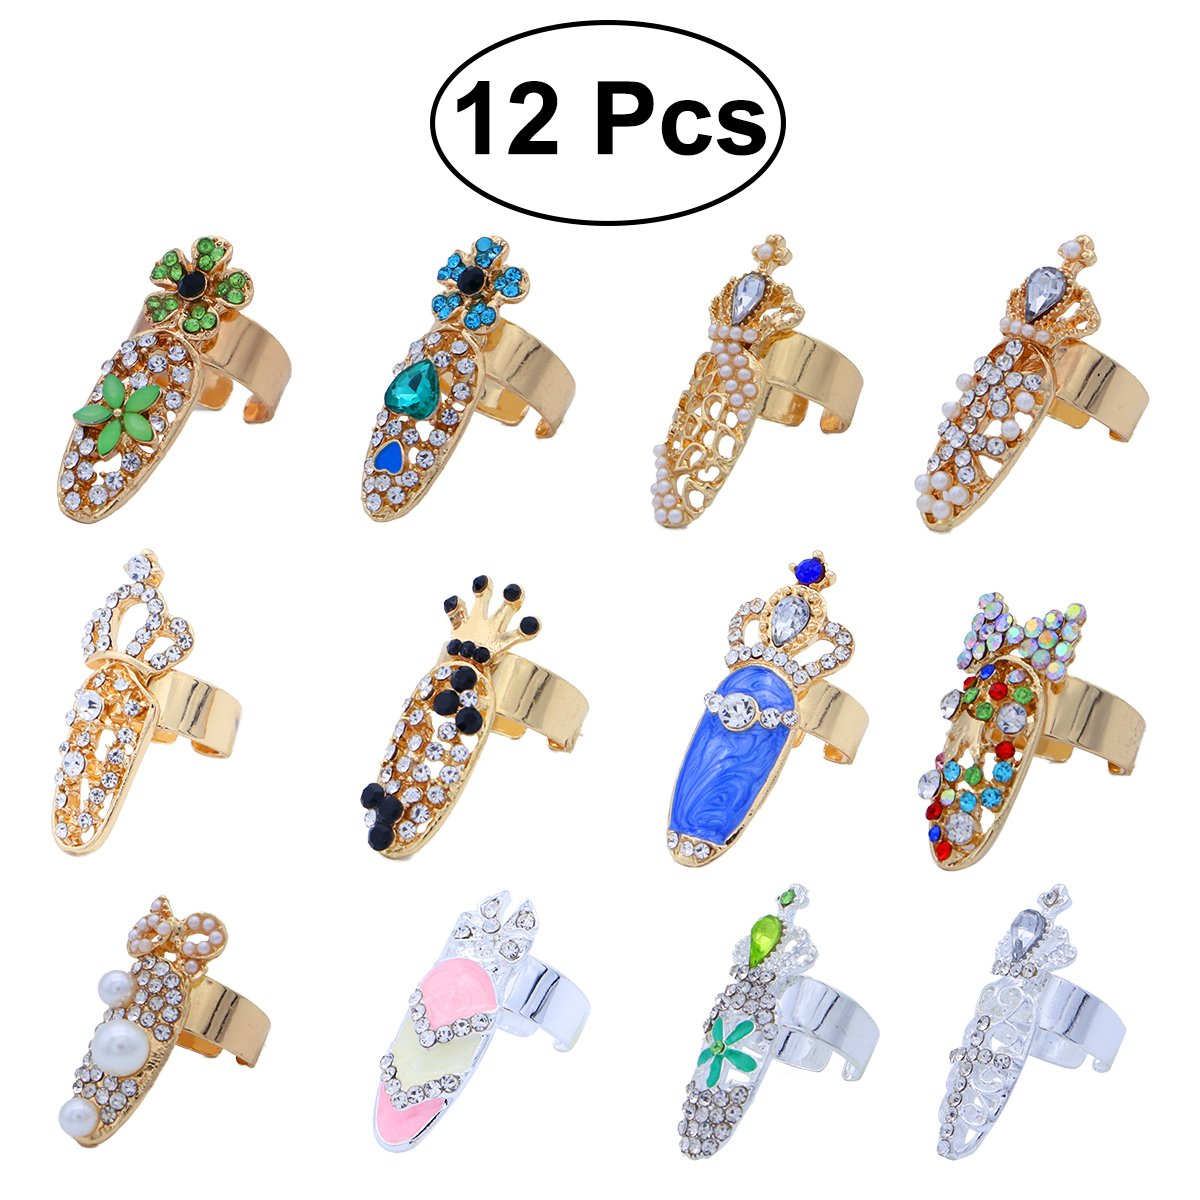 frcolor Nail Ringe, Crystal Bowknot Crown Flower Nail Art Charms Ringe-Spitze Nagel, 12Teile 12Teile